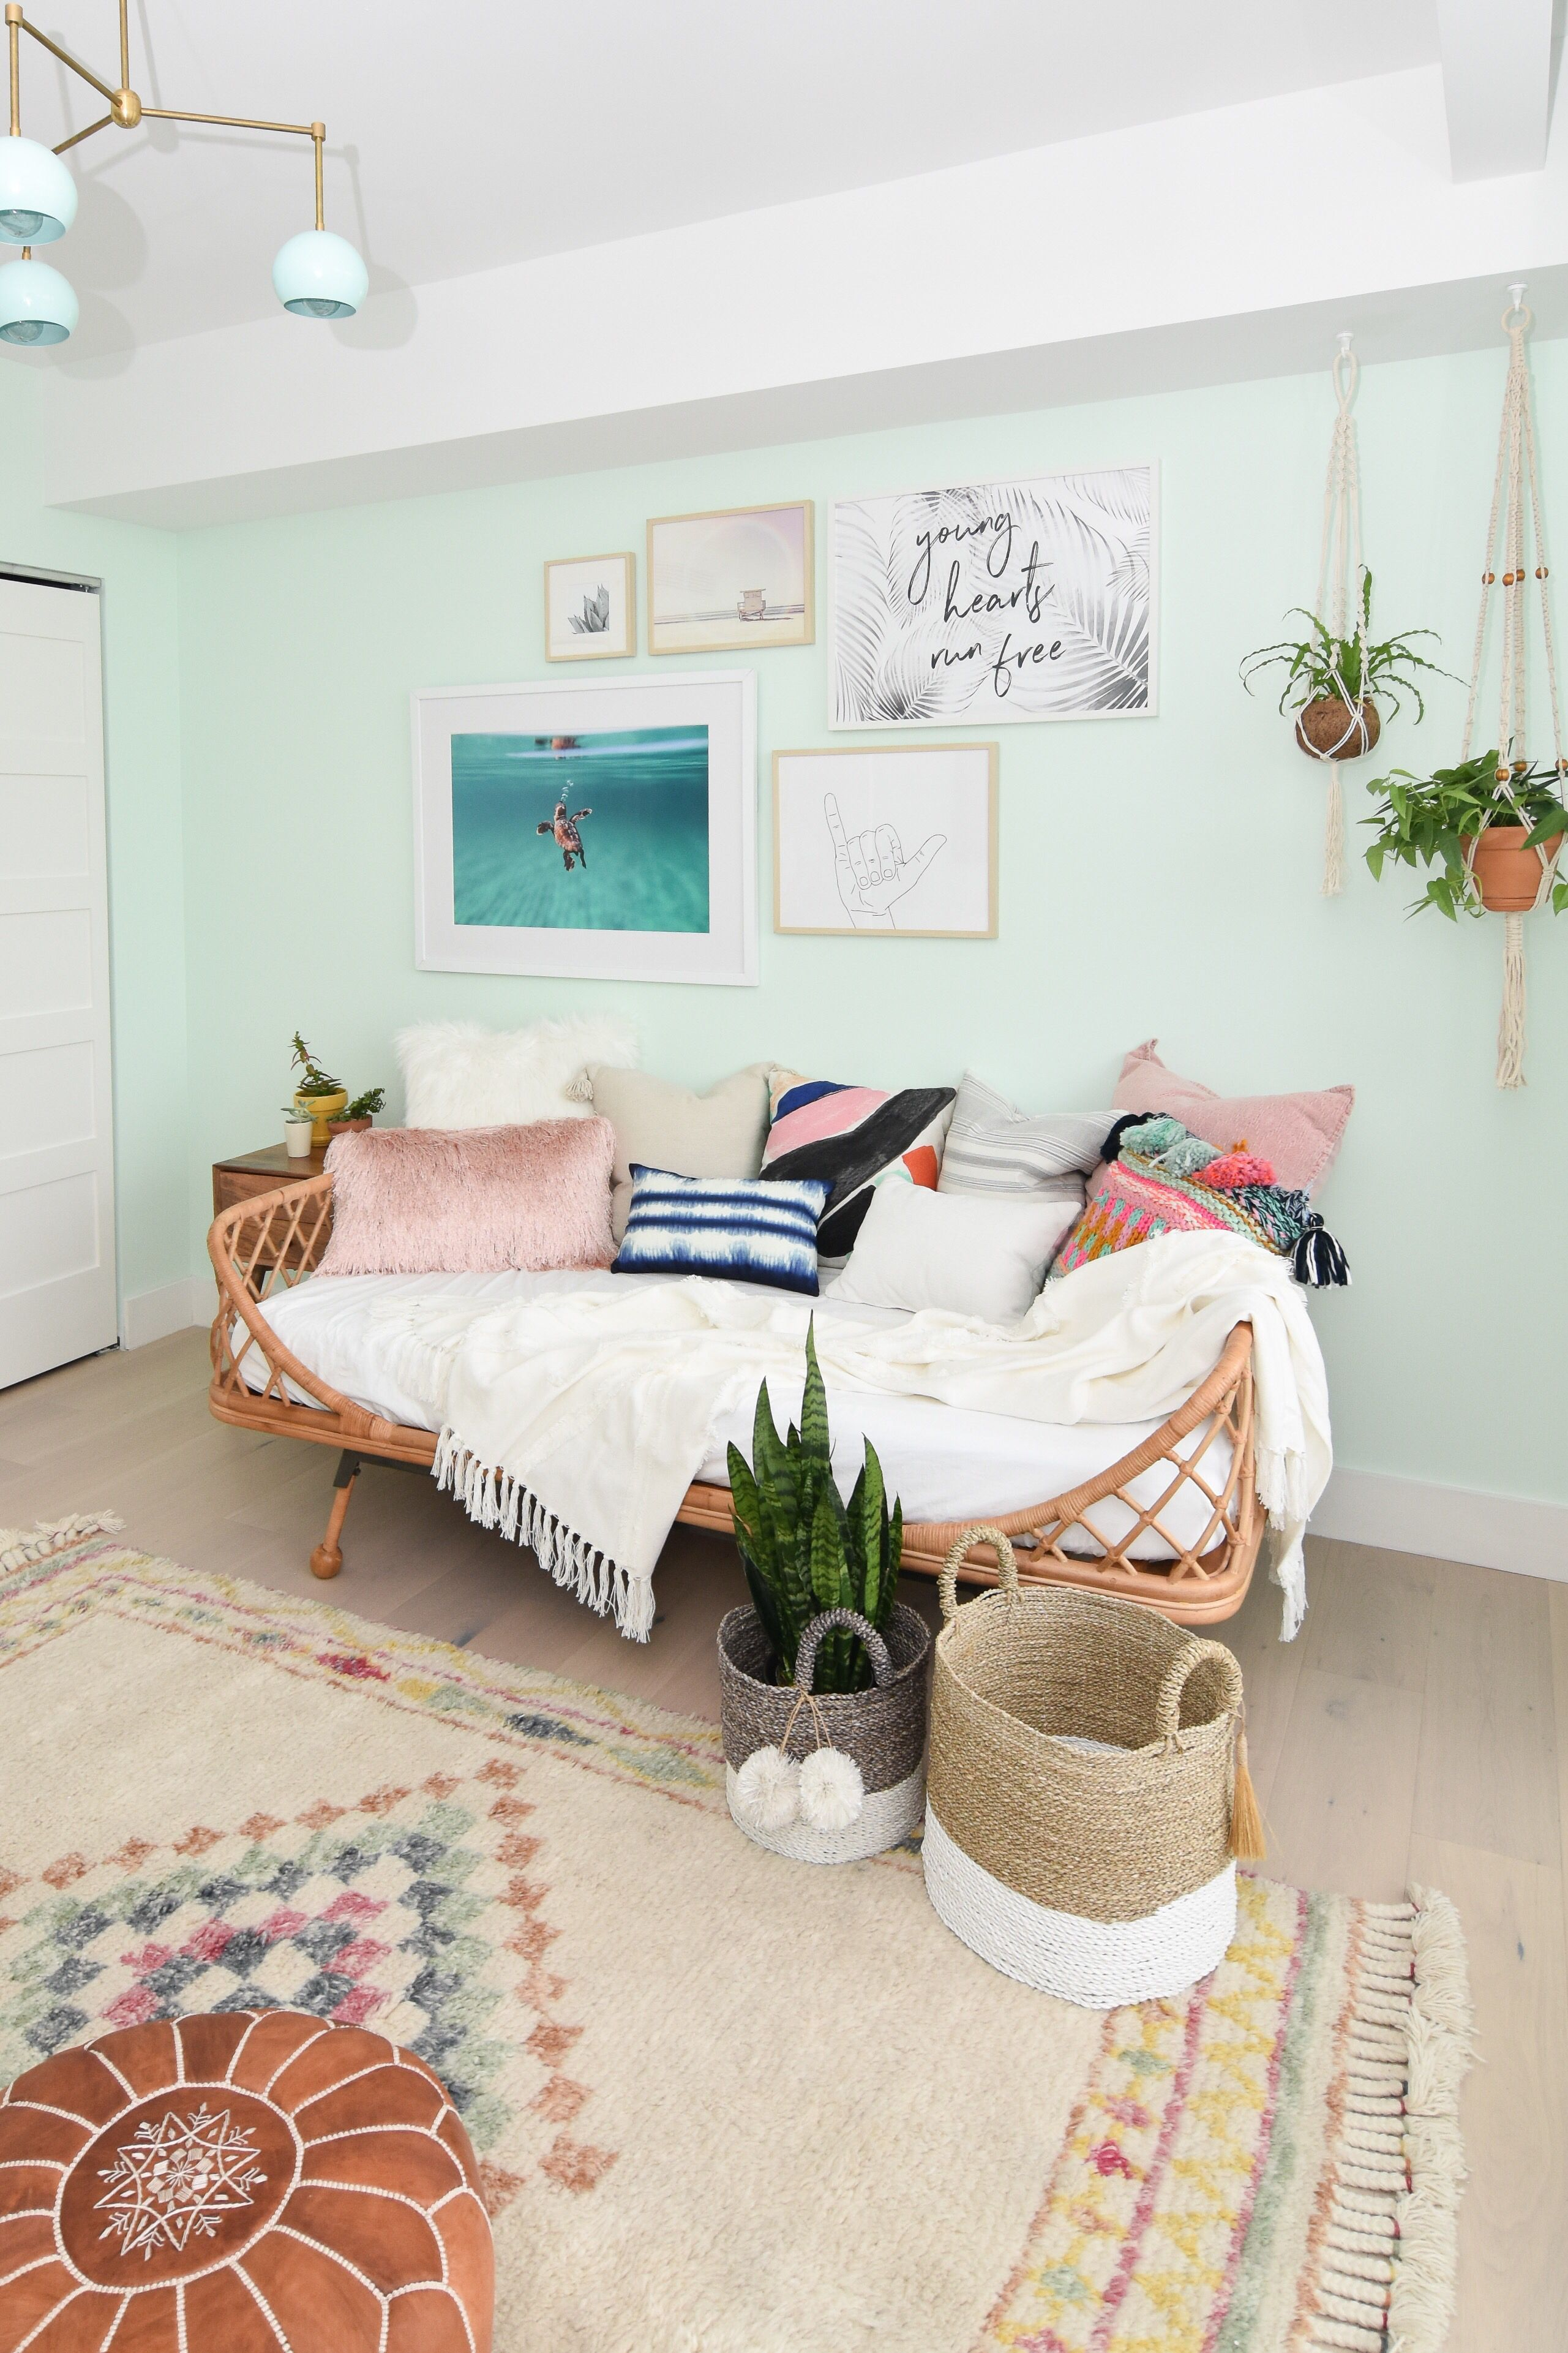 Modern Bohemian Styled Guest Room Modern Bohemian Styled Guest